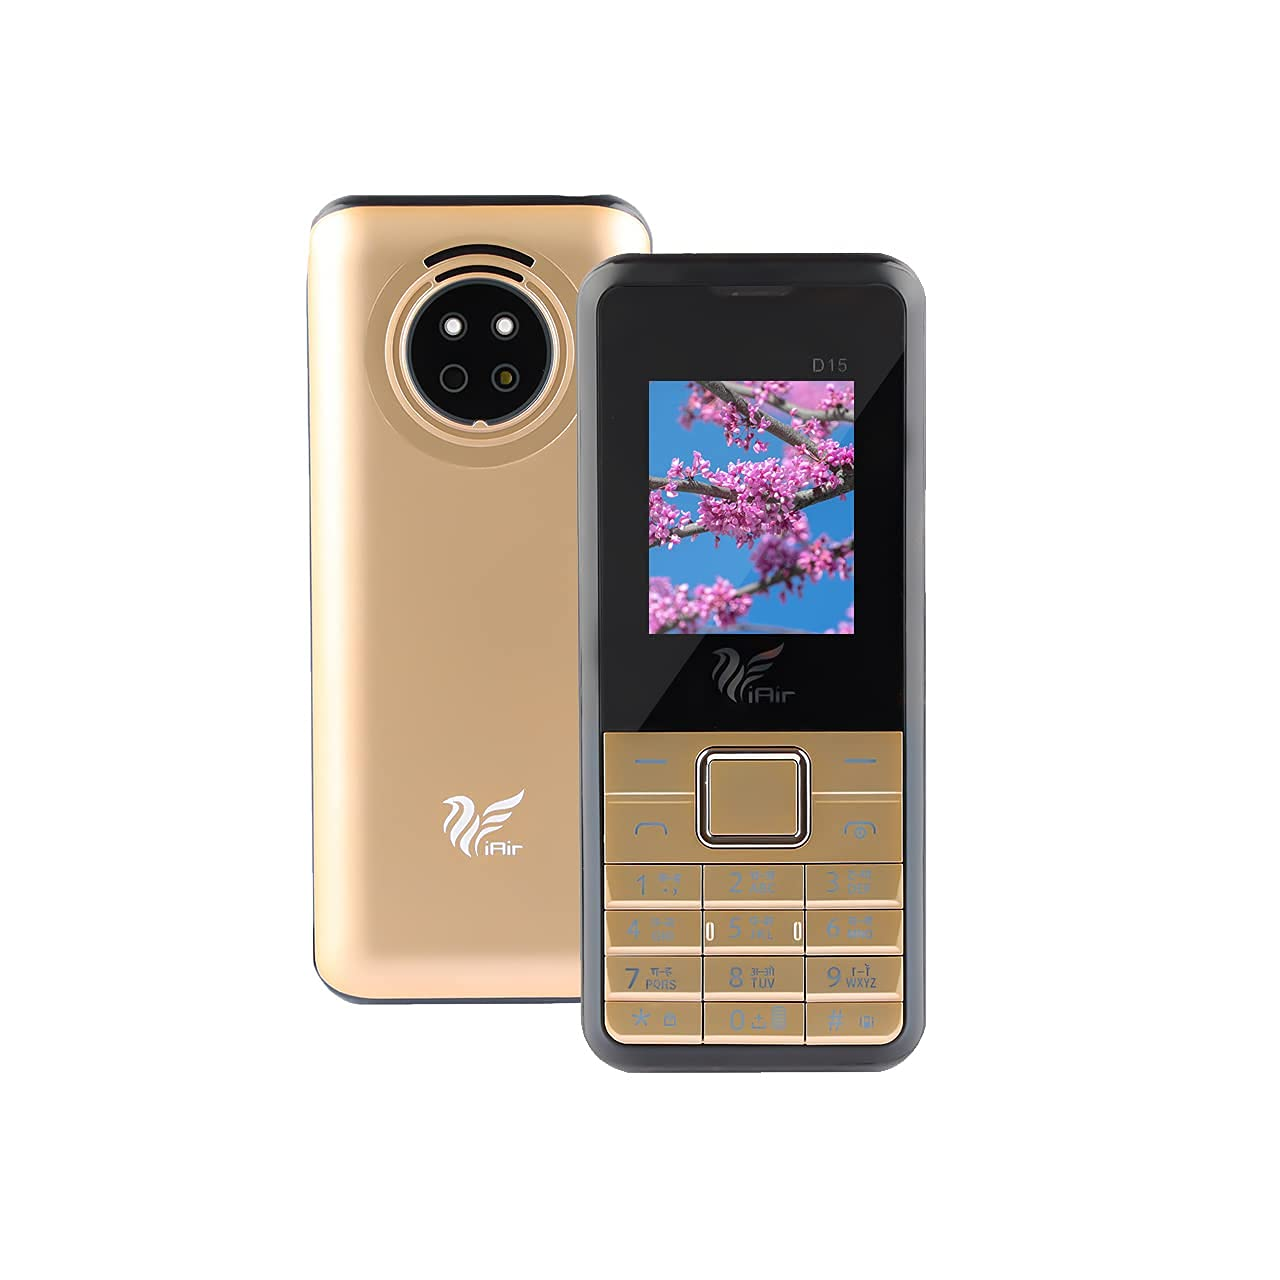 IAIR Basic Feature Dual Sim Mobile Phone with 2800mAh Battery, 1.77 inch Display Screen, 0.8 mp Camera with Glossy Finish (D15, Gold)